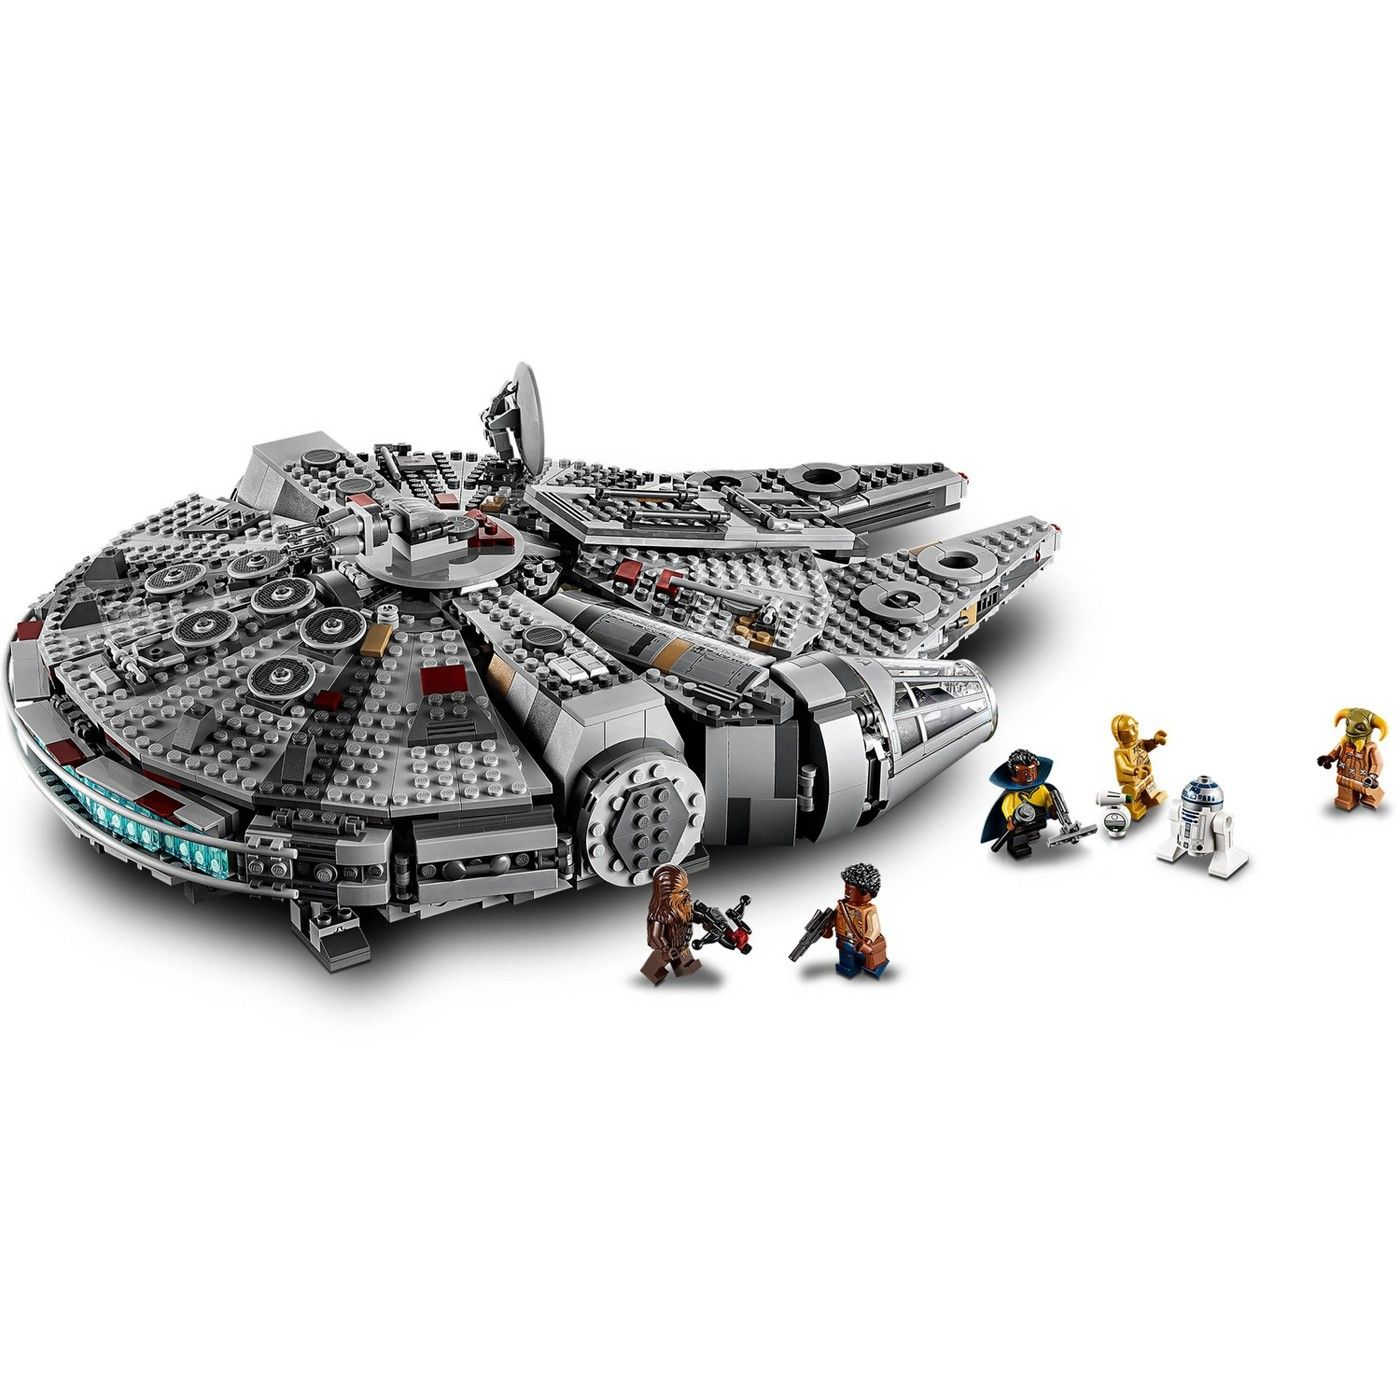 Lego Star Wars The Rise Of Skywalker Millennium Falcon Building Kit Starship Model With Minifigures 75257 Affili Lego Star Wars Lego Star Lego Star Wars Sets